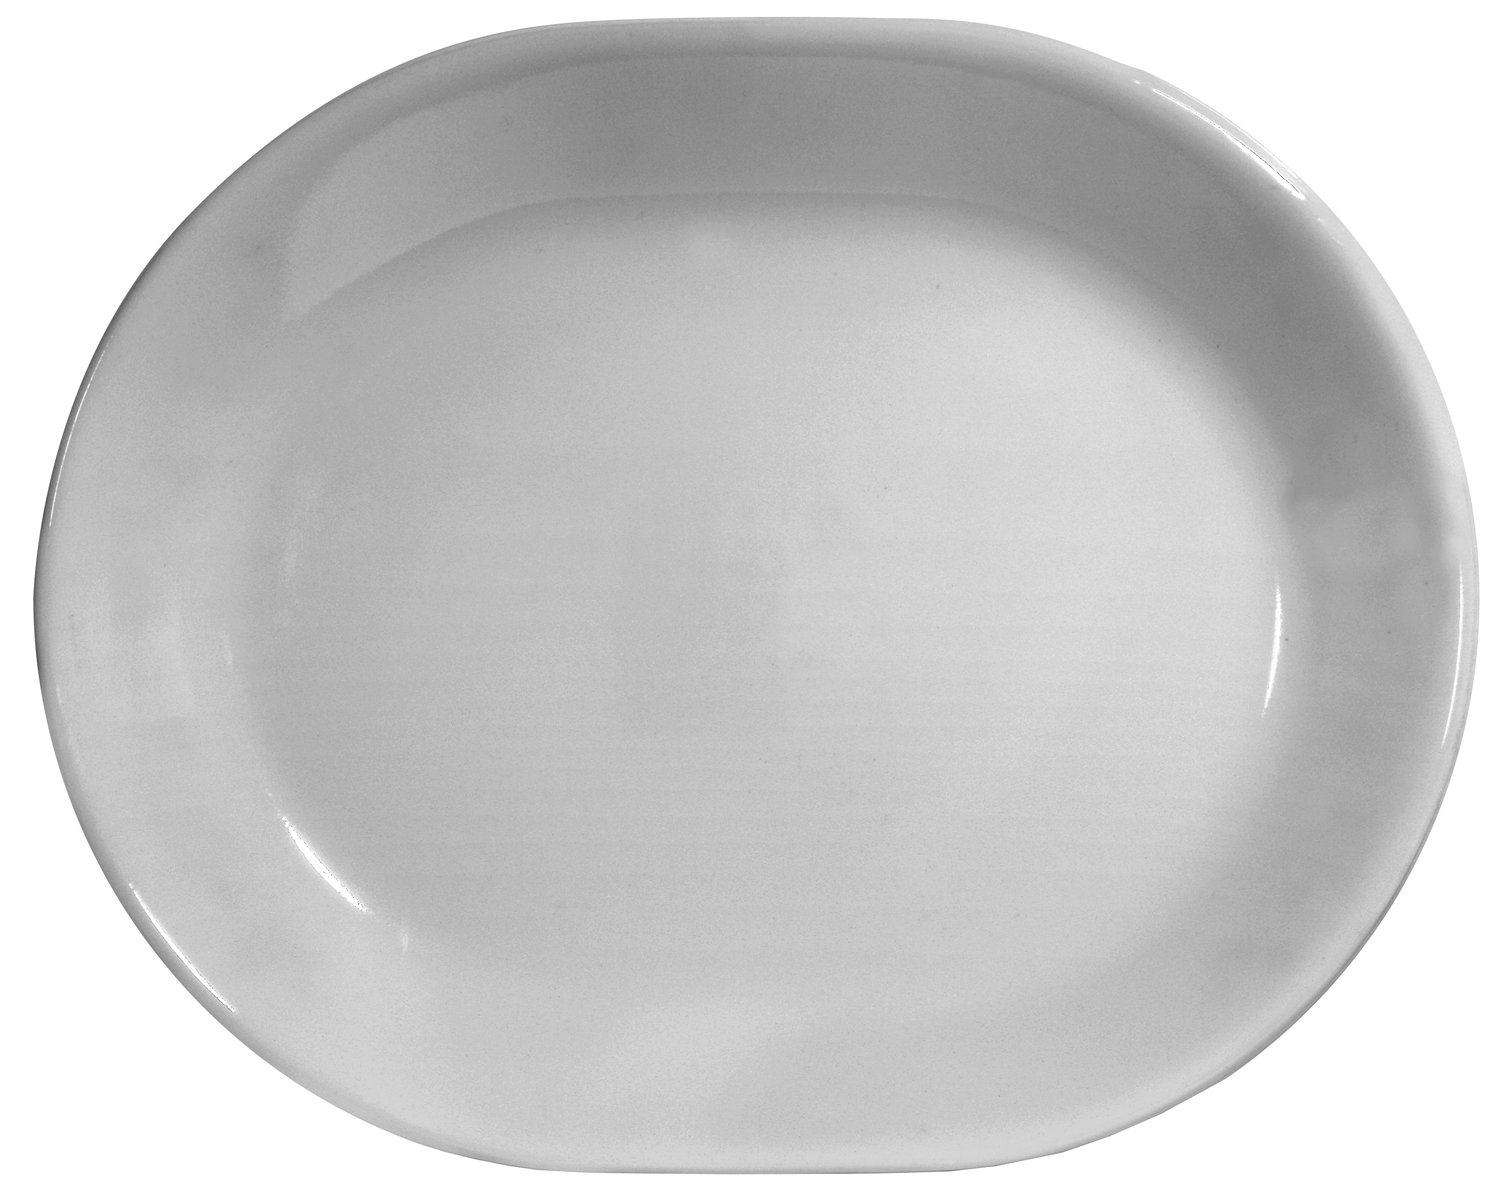 Corelle Livingware 12-1/4-Inch Serving Platter, Winter Frost White 6003110